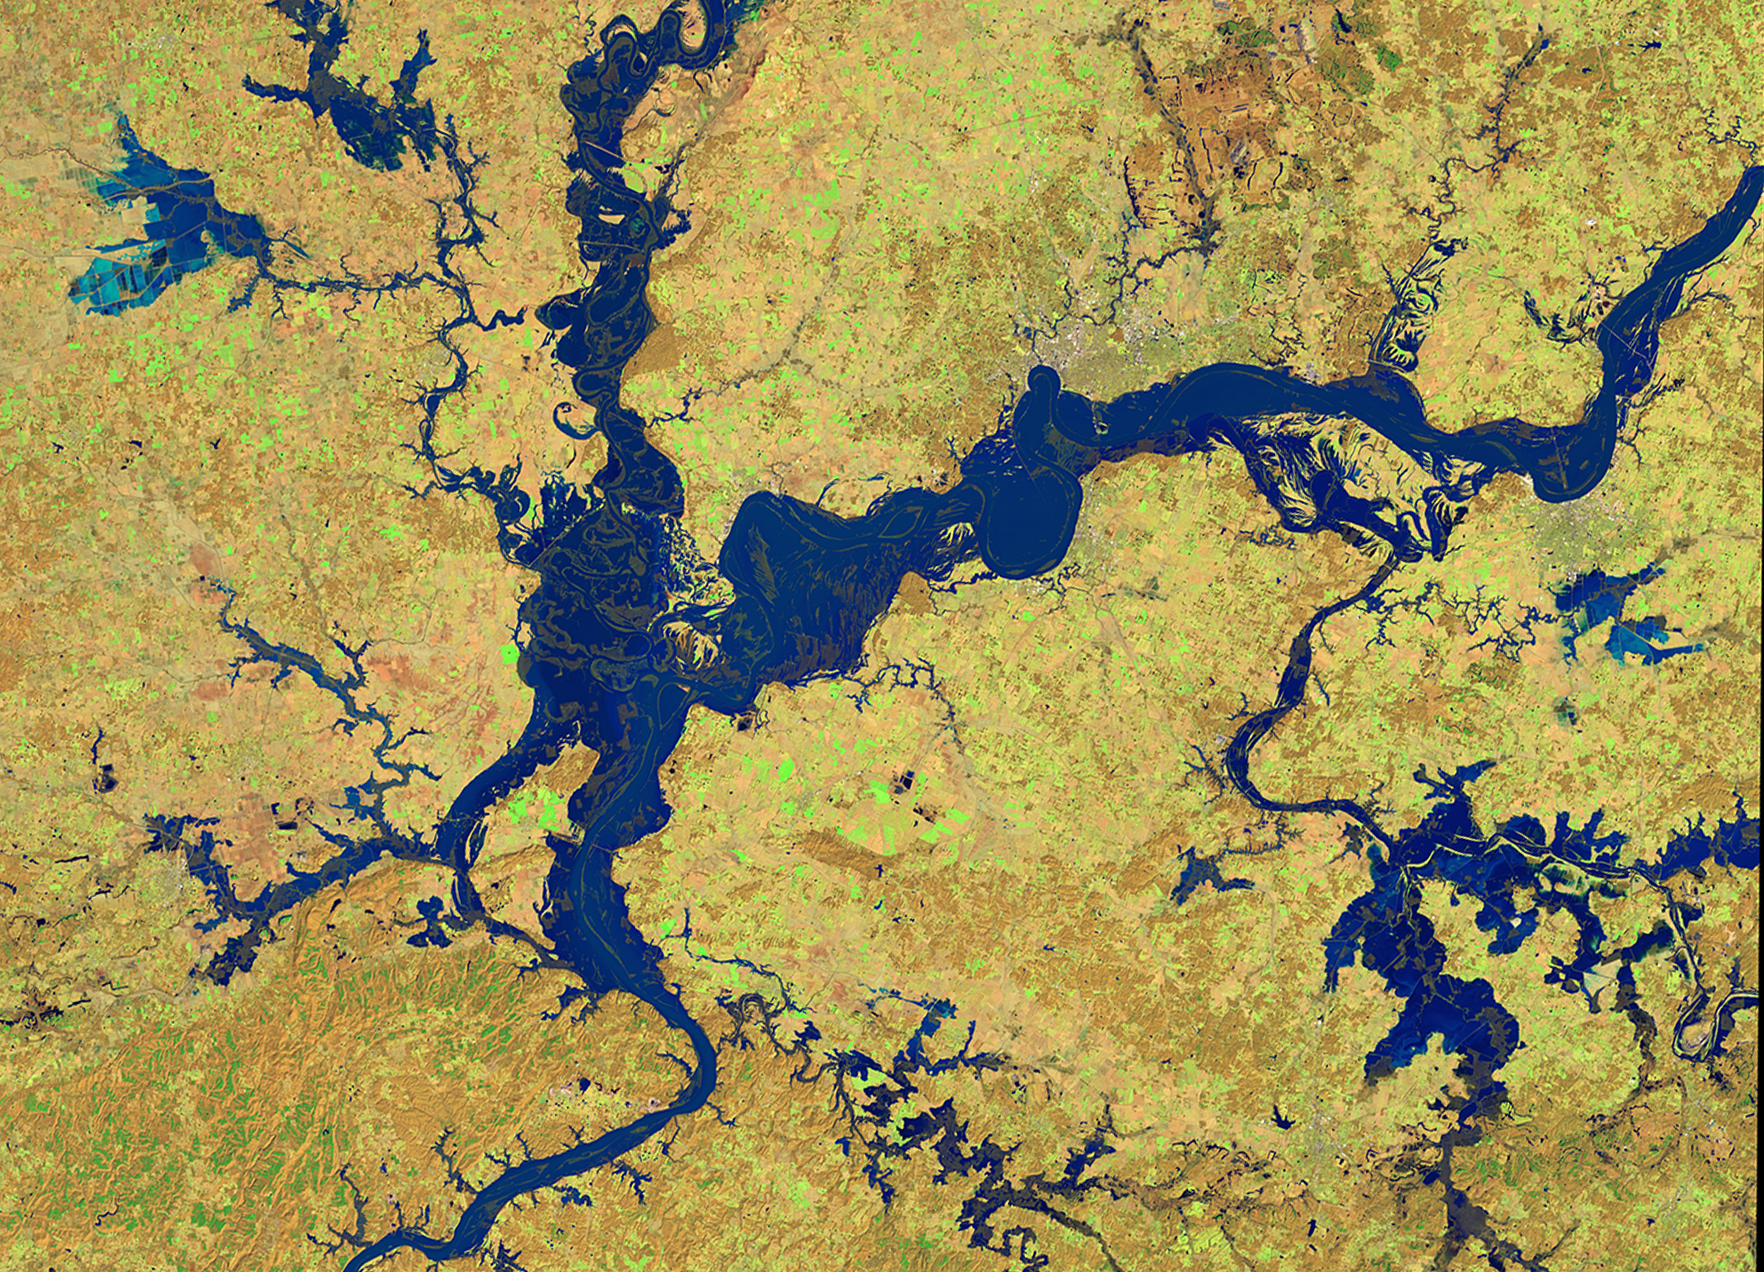 This is a satellite image of flooding in southern Indiana.